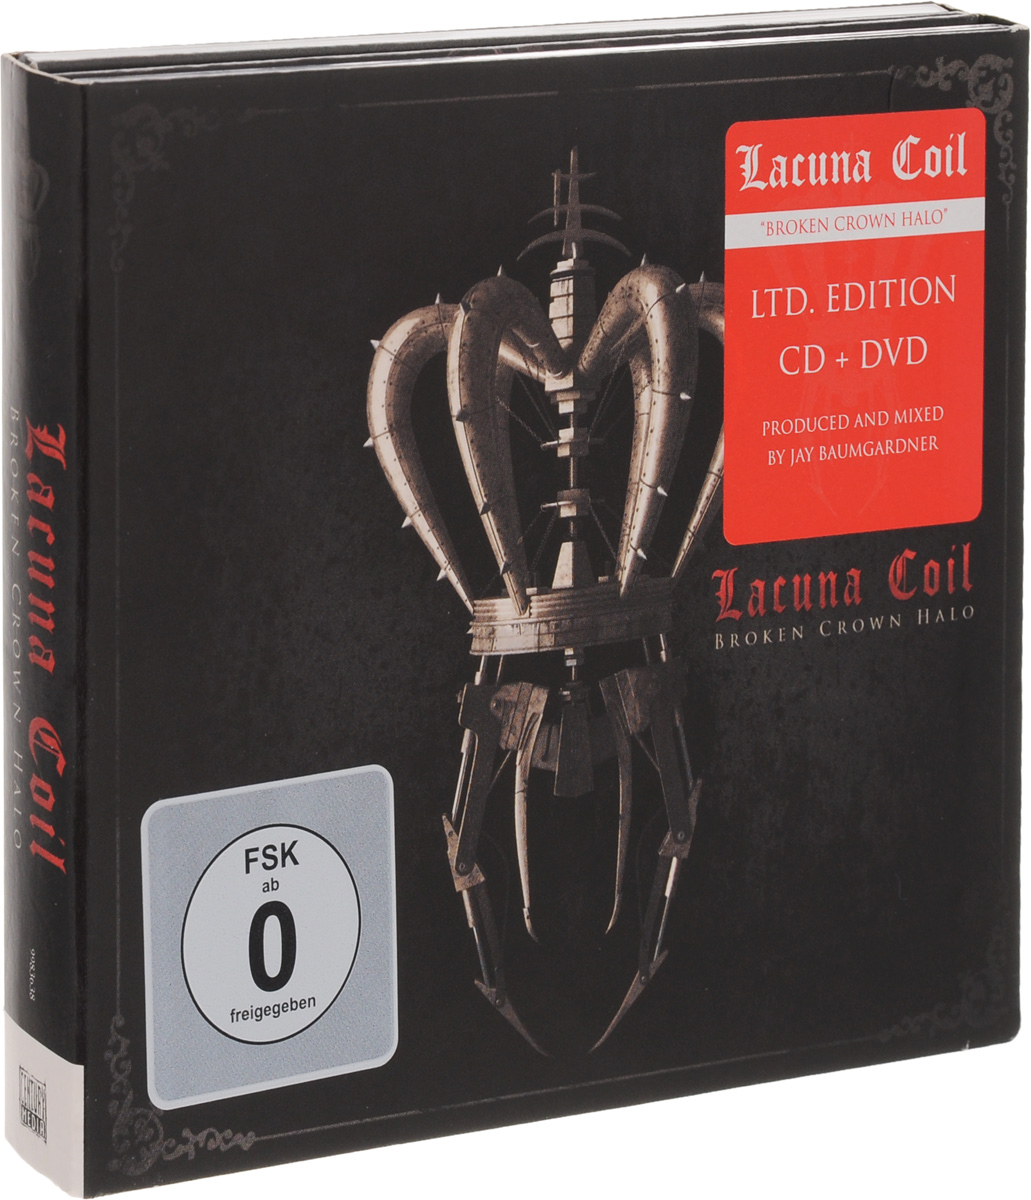 Lacuna Coil Lacuna Coil. Broken Crown Halo (CD + DVD)